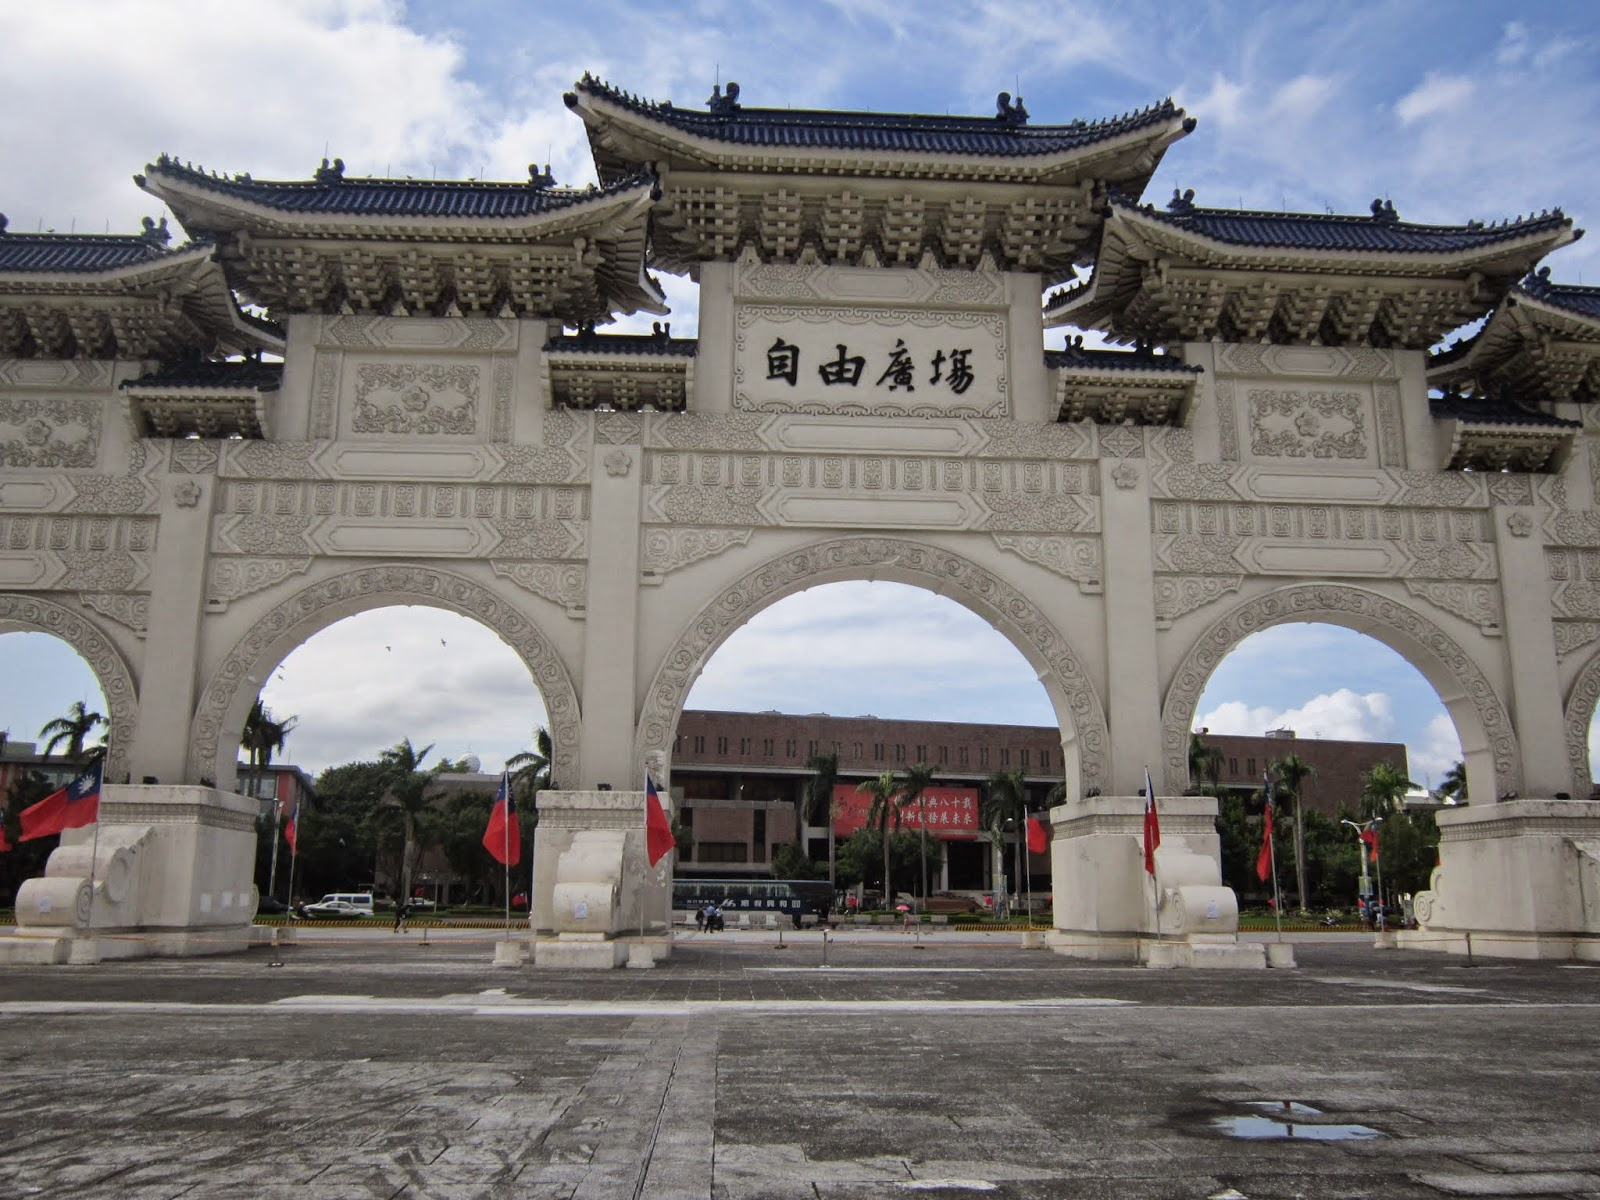 The main entrance gate to Ching Kai Shek Memorial Hall in Taipei, Taiwan